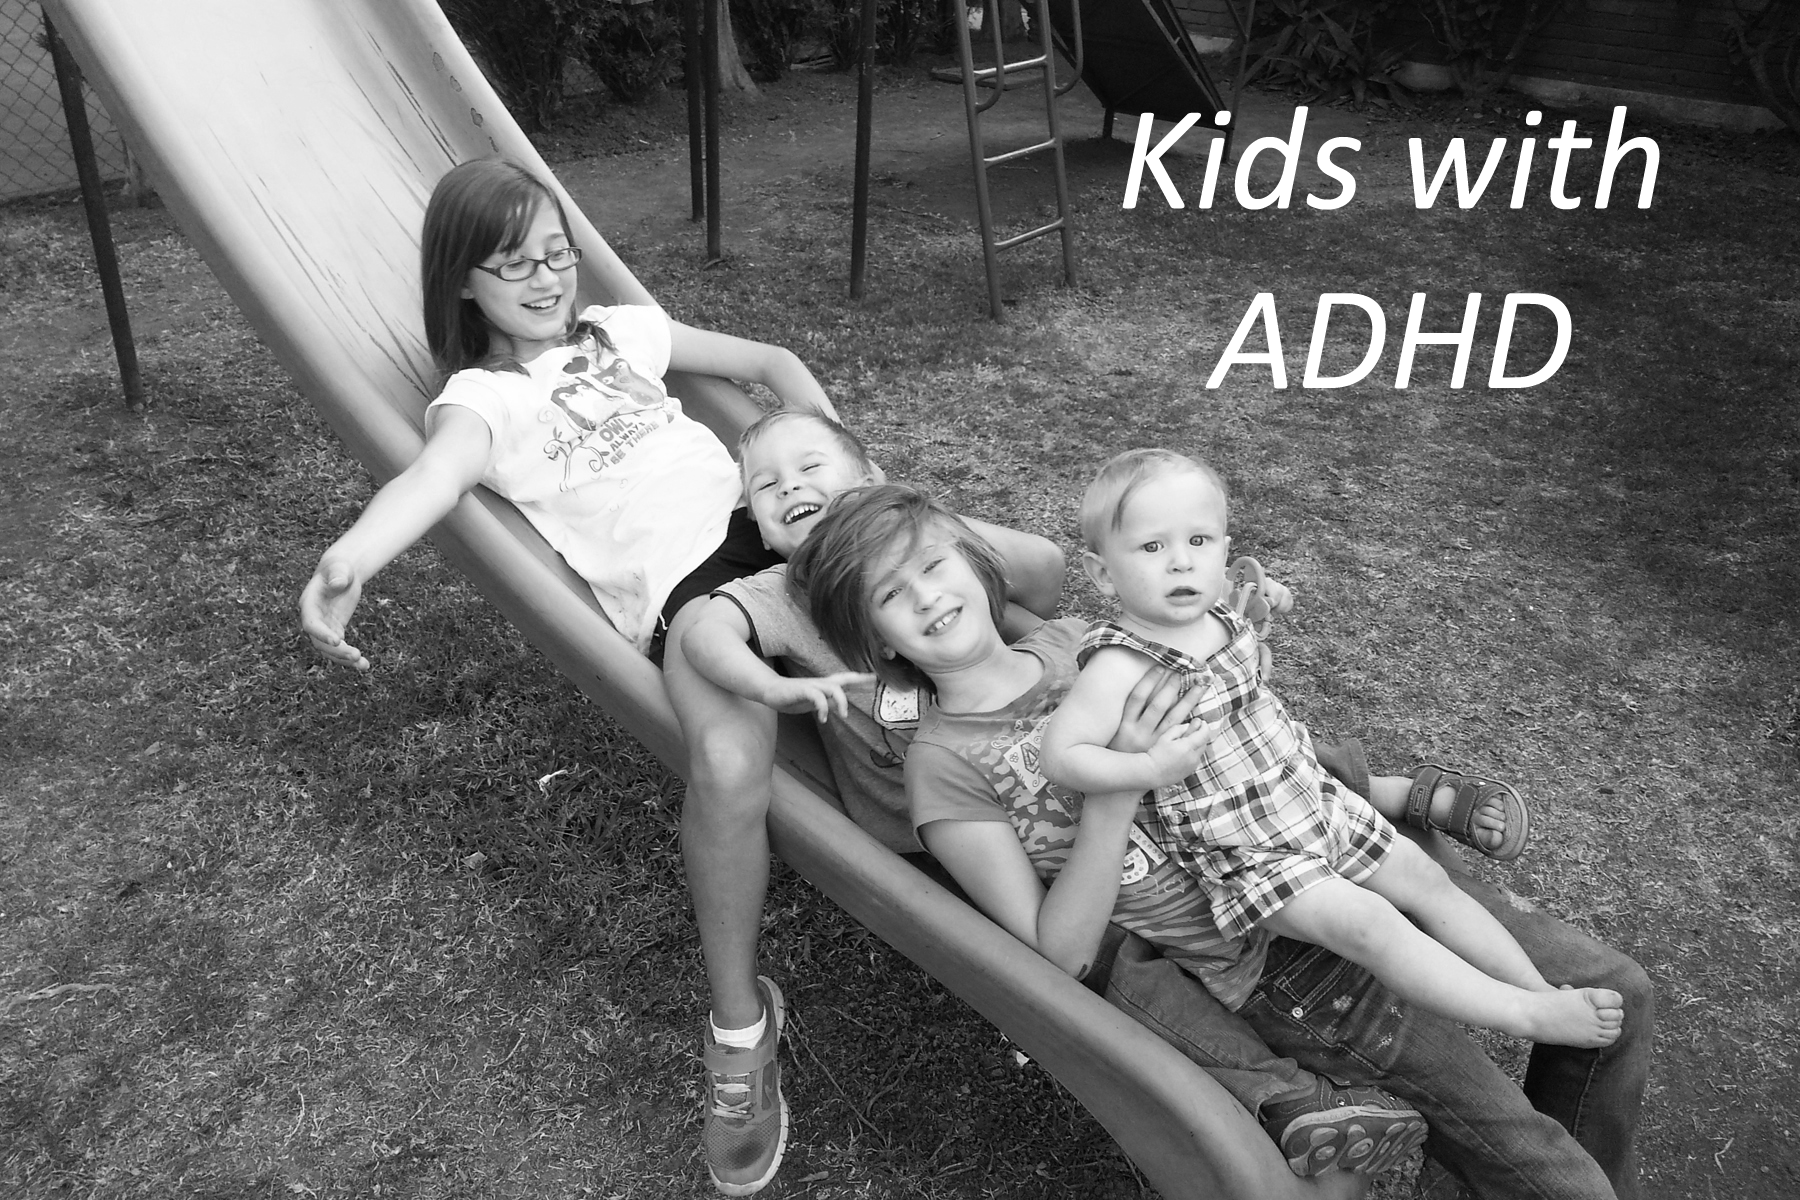 kids-with-adhd